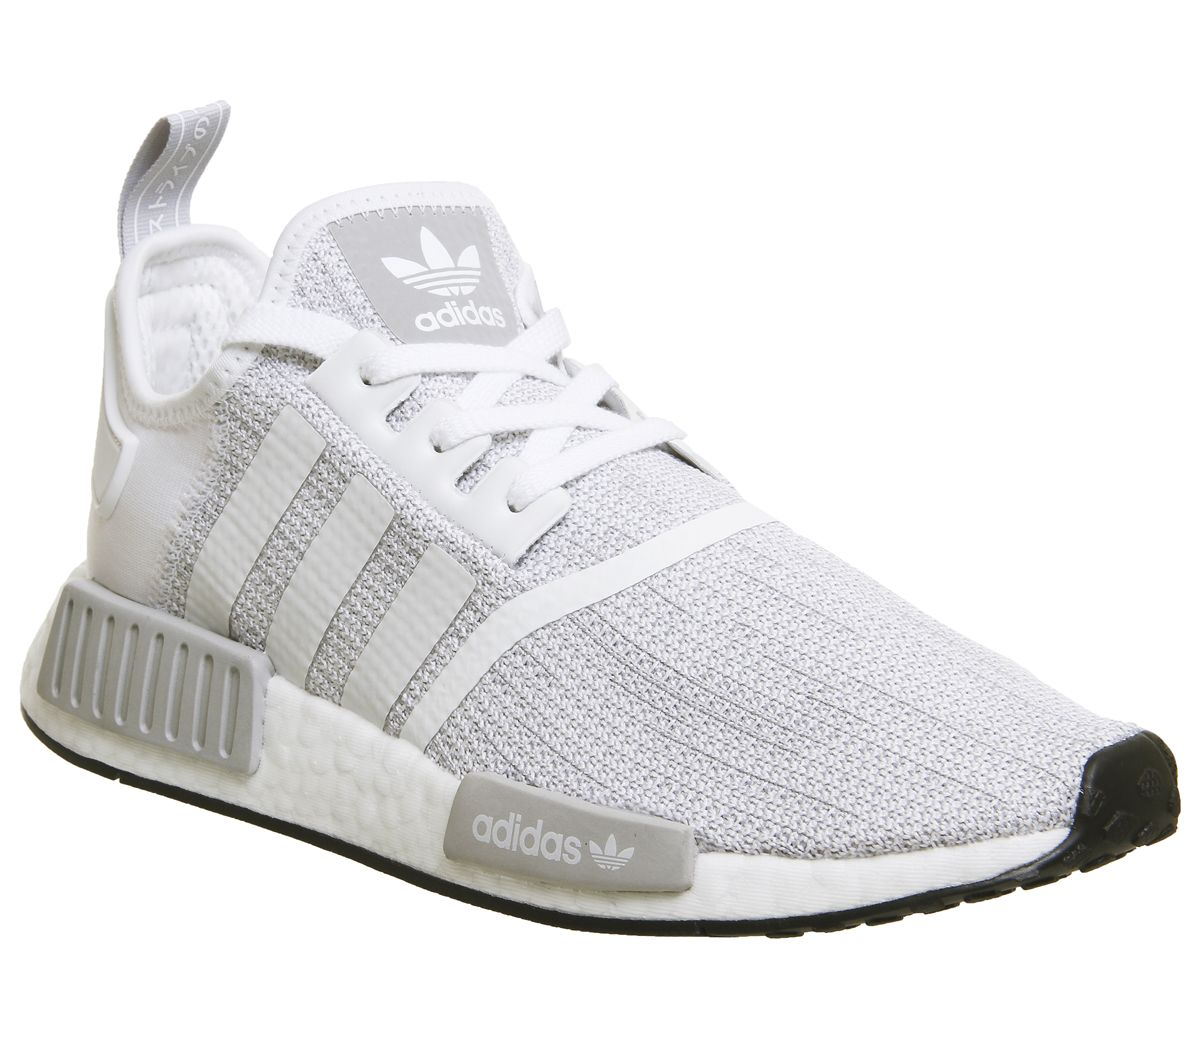 quality design f697d 869a8 Nmd R1 Trainers